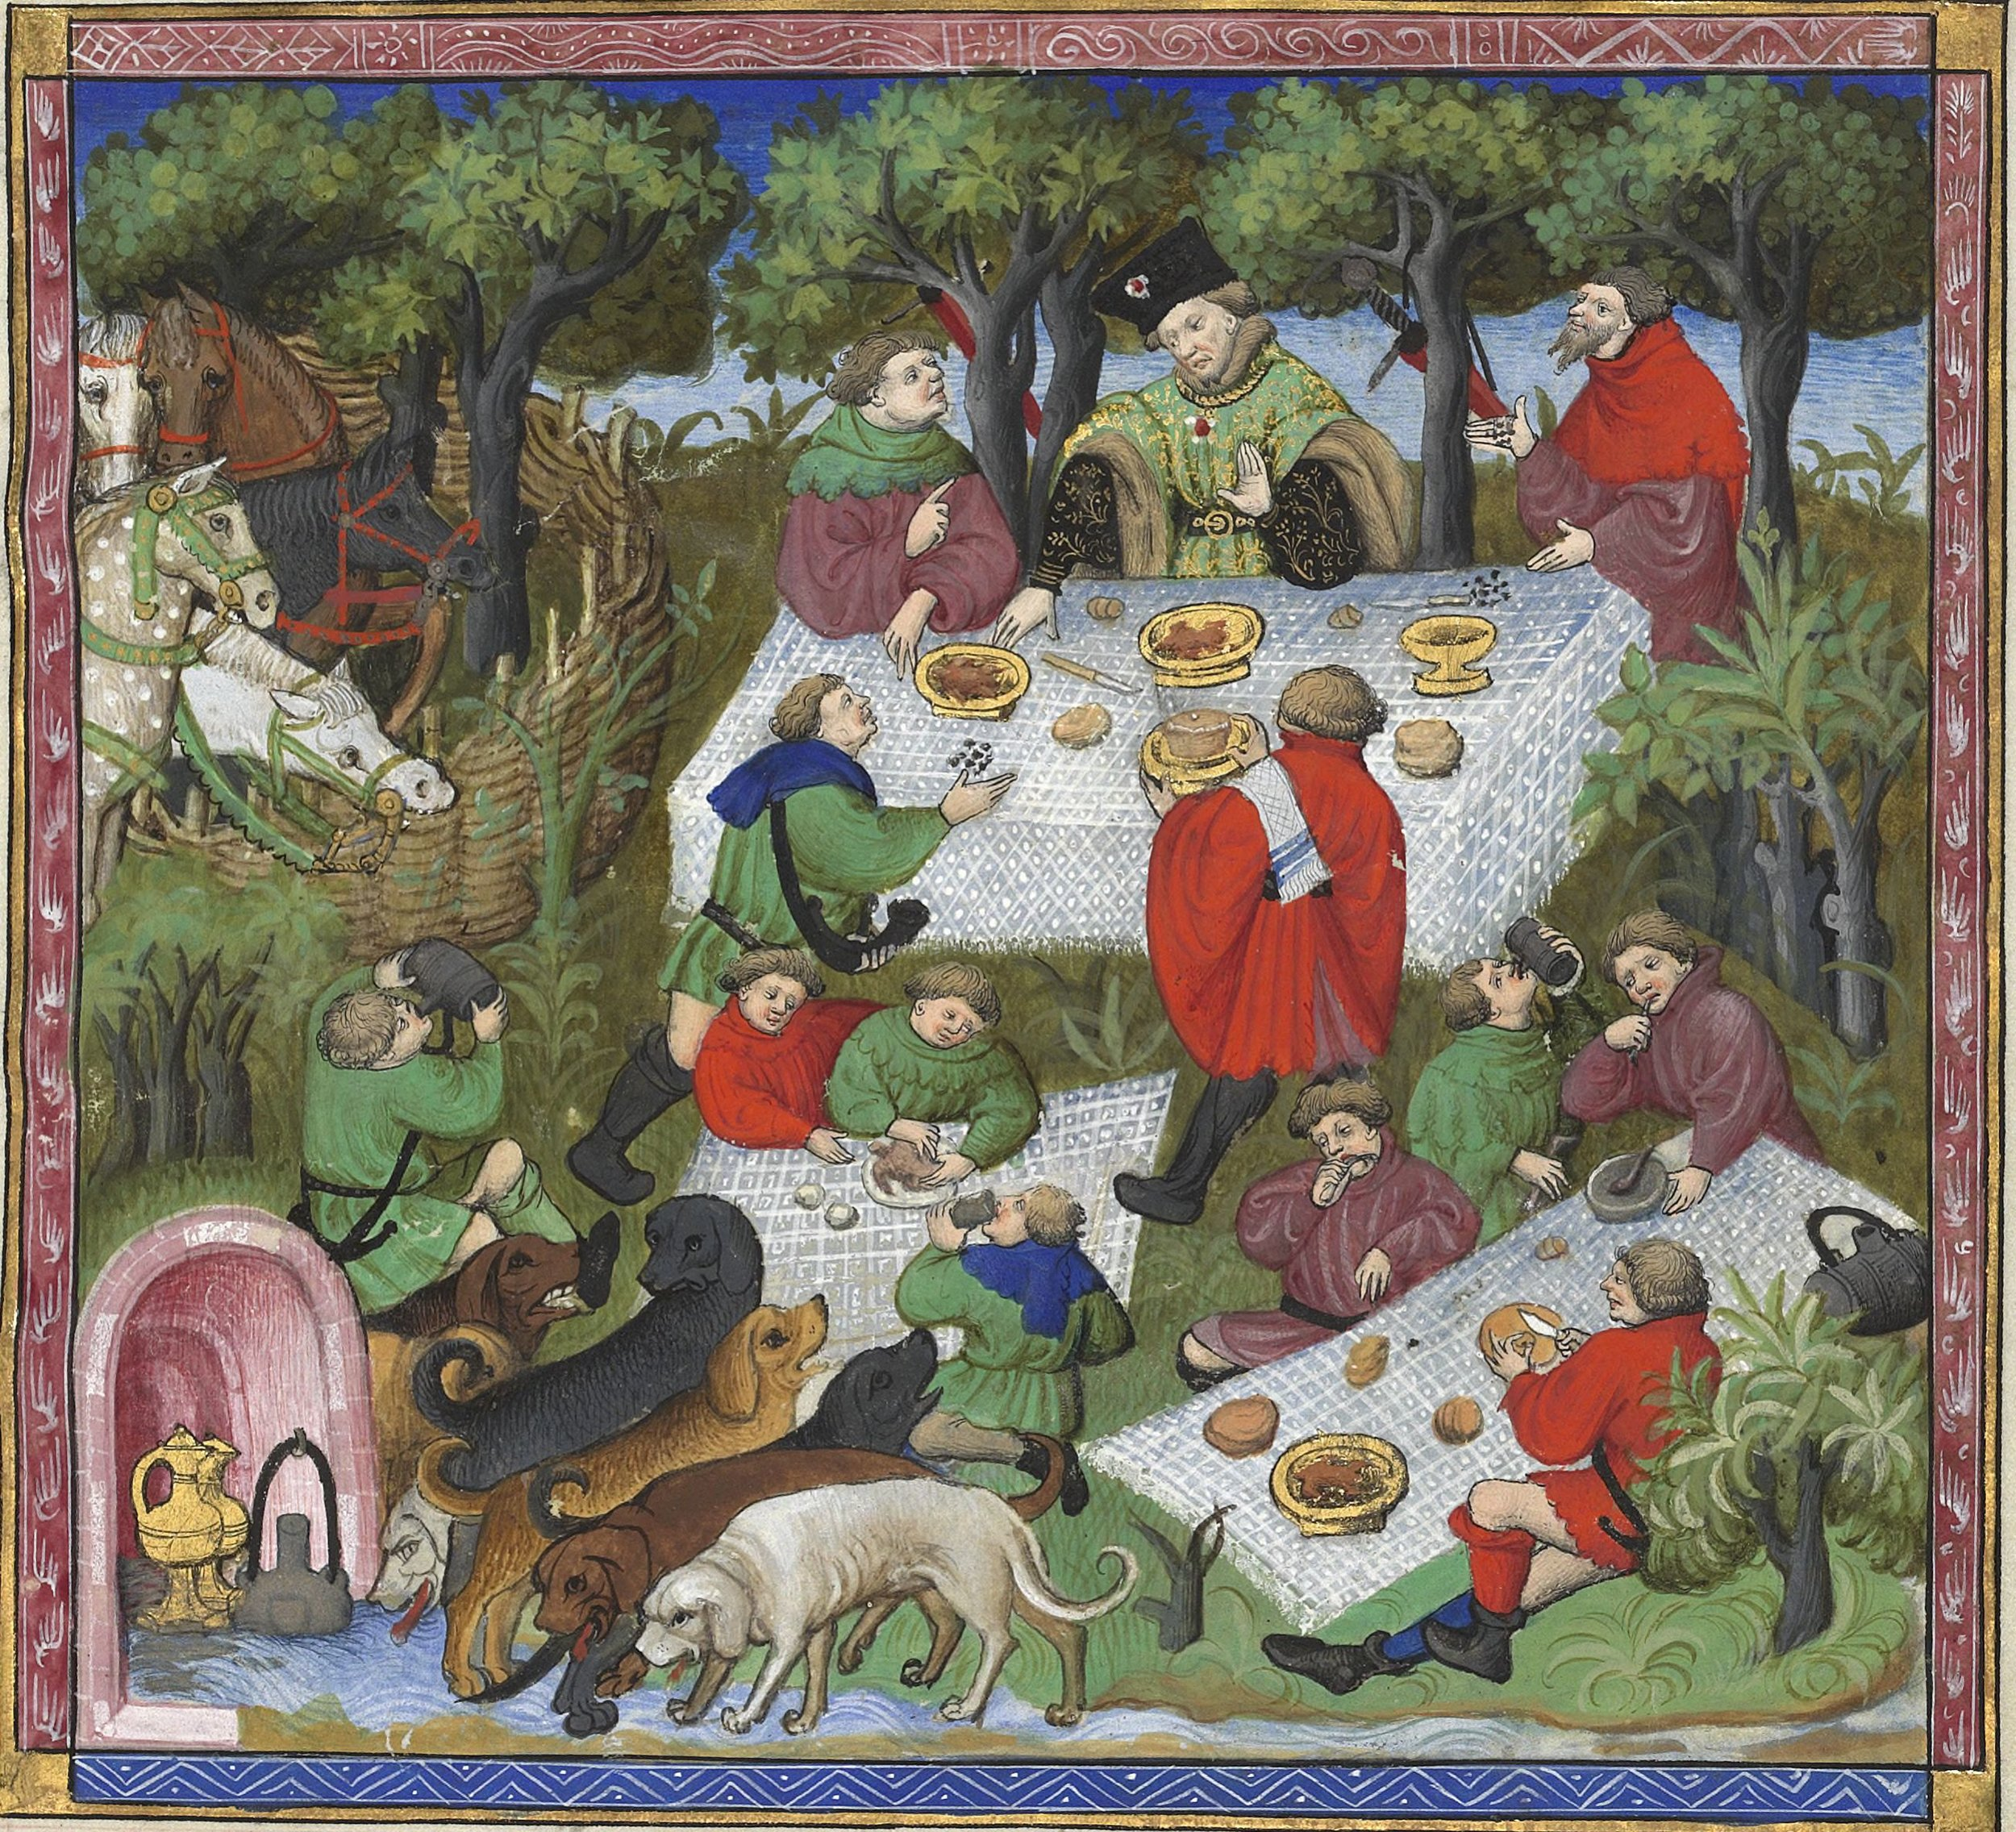 Gaston Phoebus BNF 616, f67r - Feasting accessories